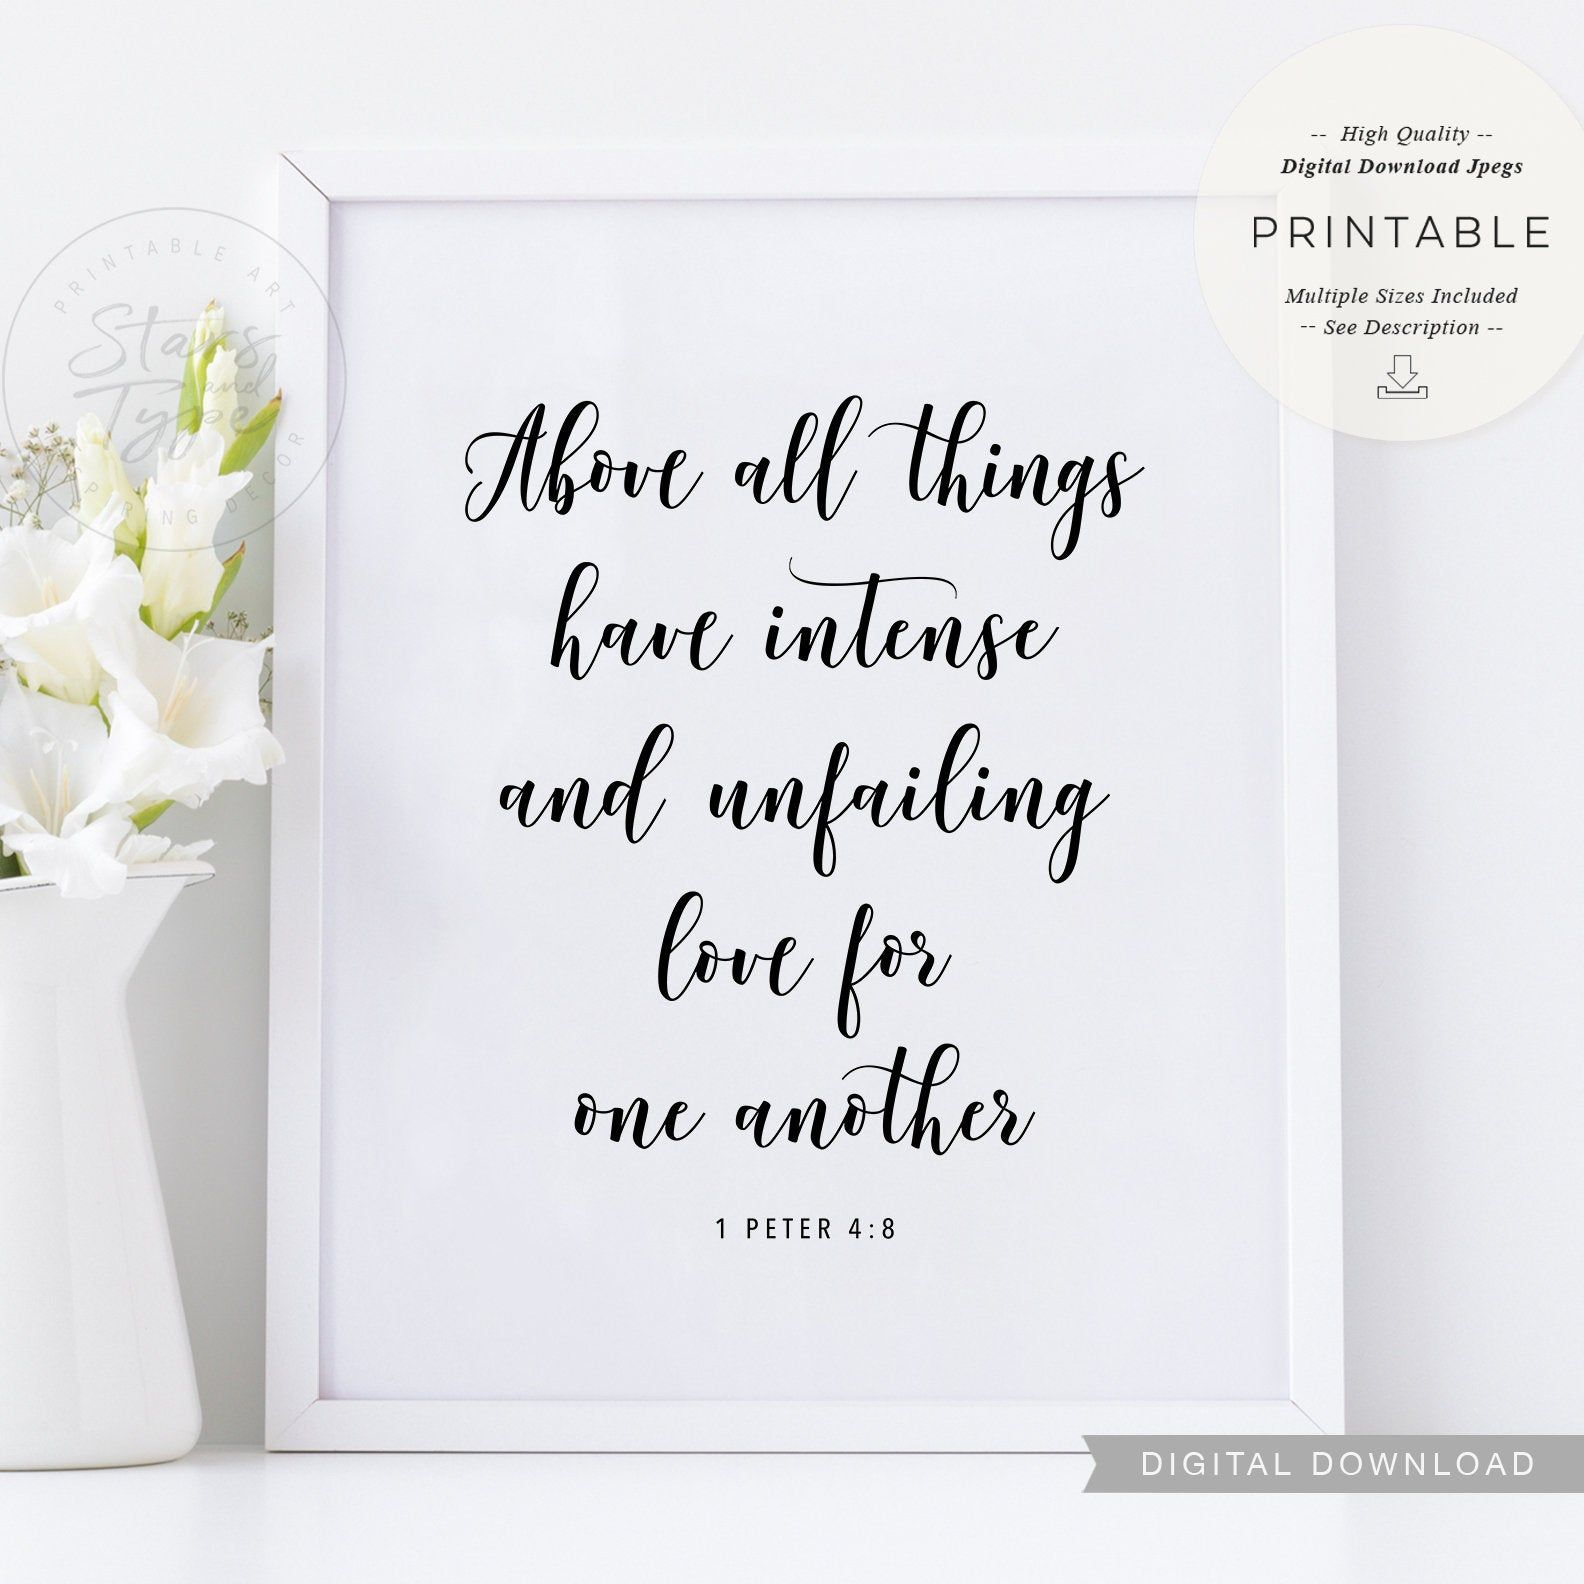 Above All Things, PRINTABLE Art, 1 Peter 4:8, Bible Verse, Love Quote Decor, Digital DOWNLOAD Print Jpg